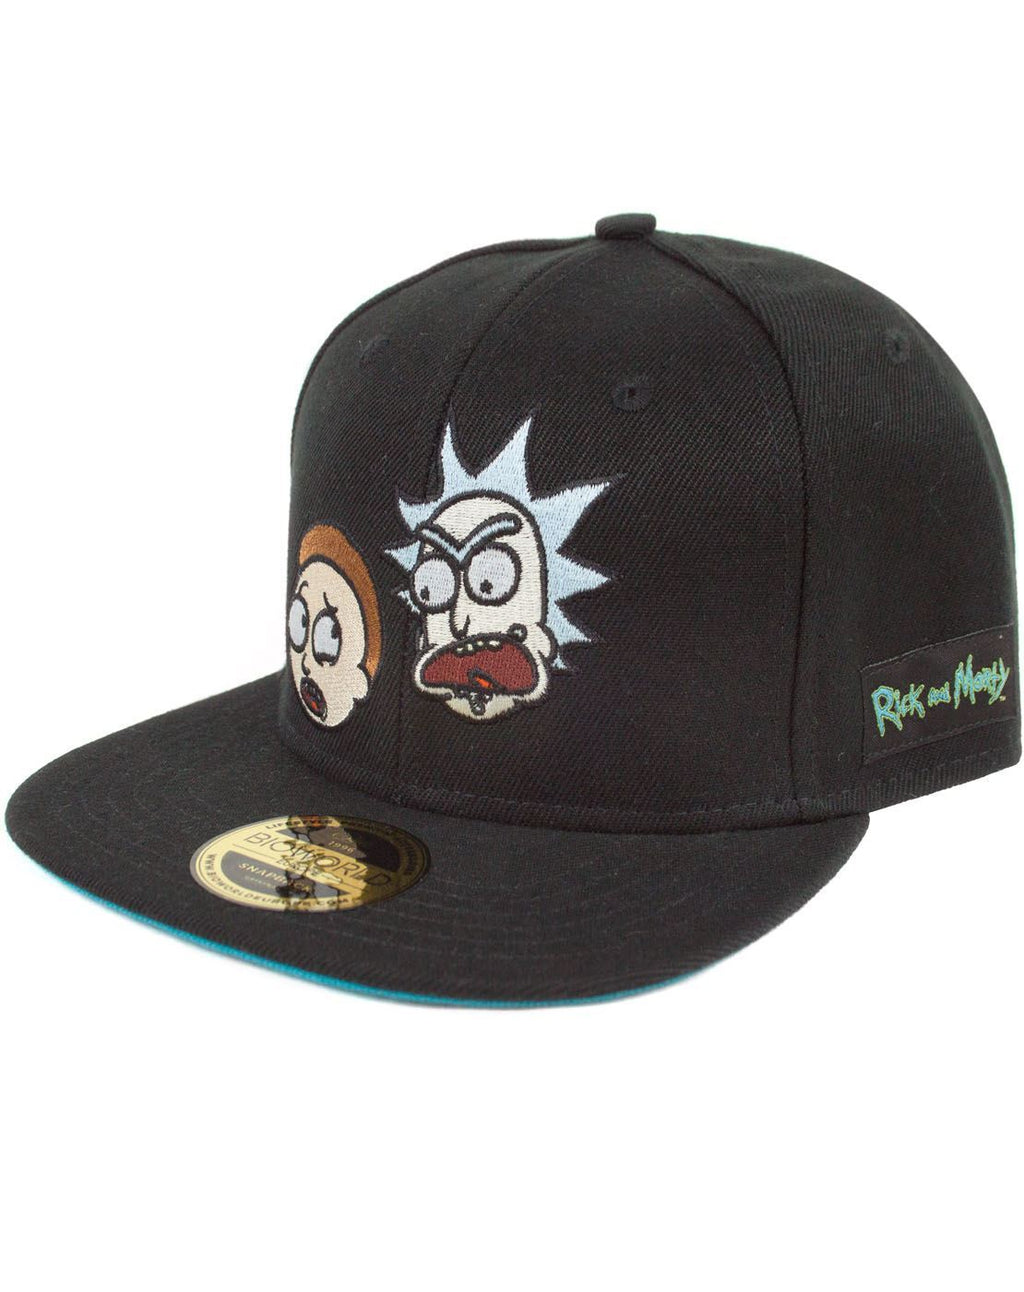 Rick And Morty Faces Snapback Cap